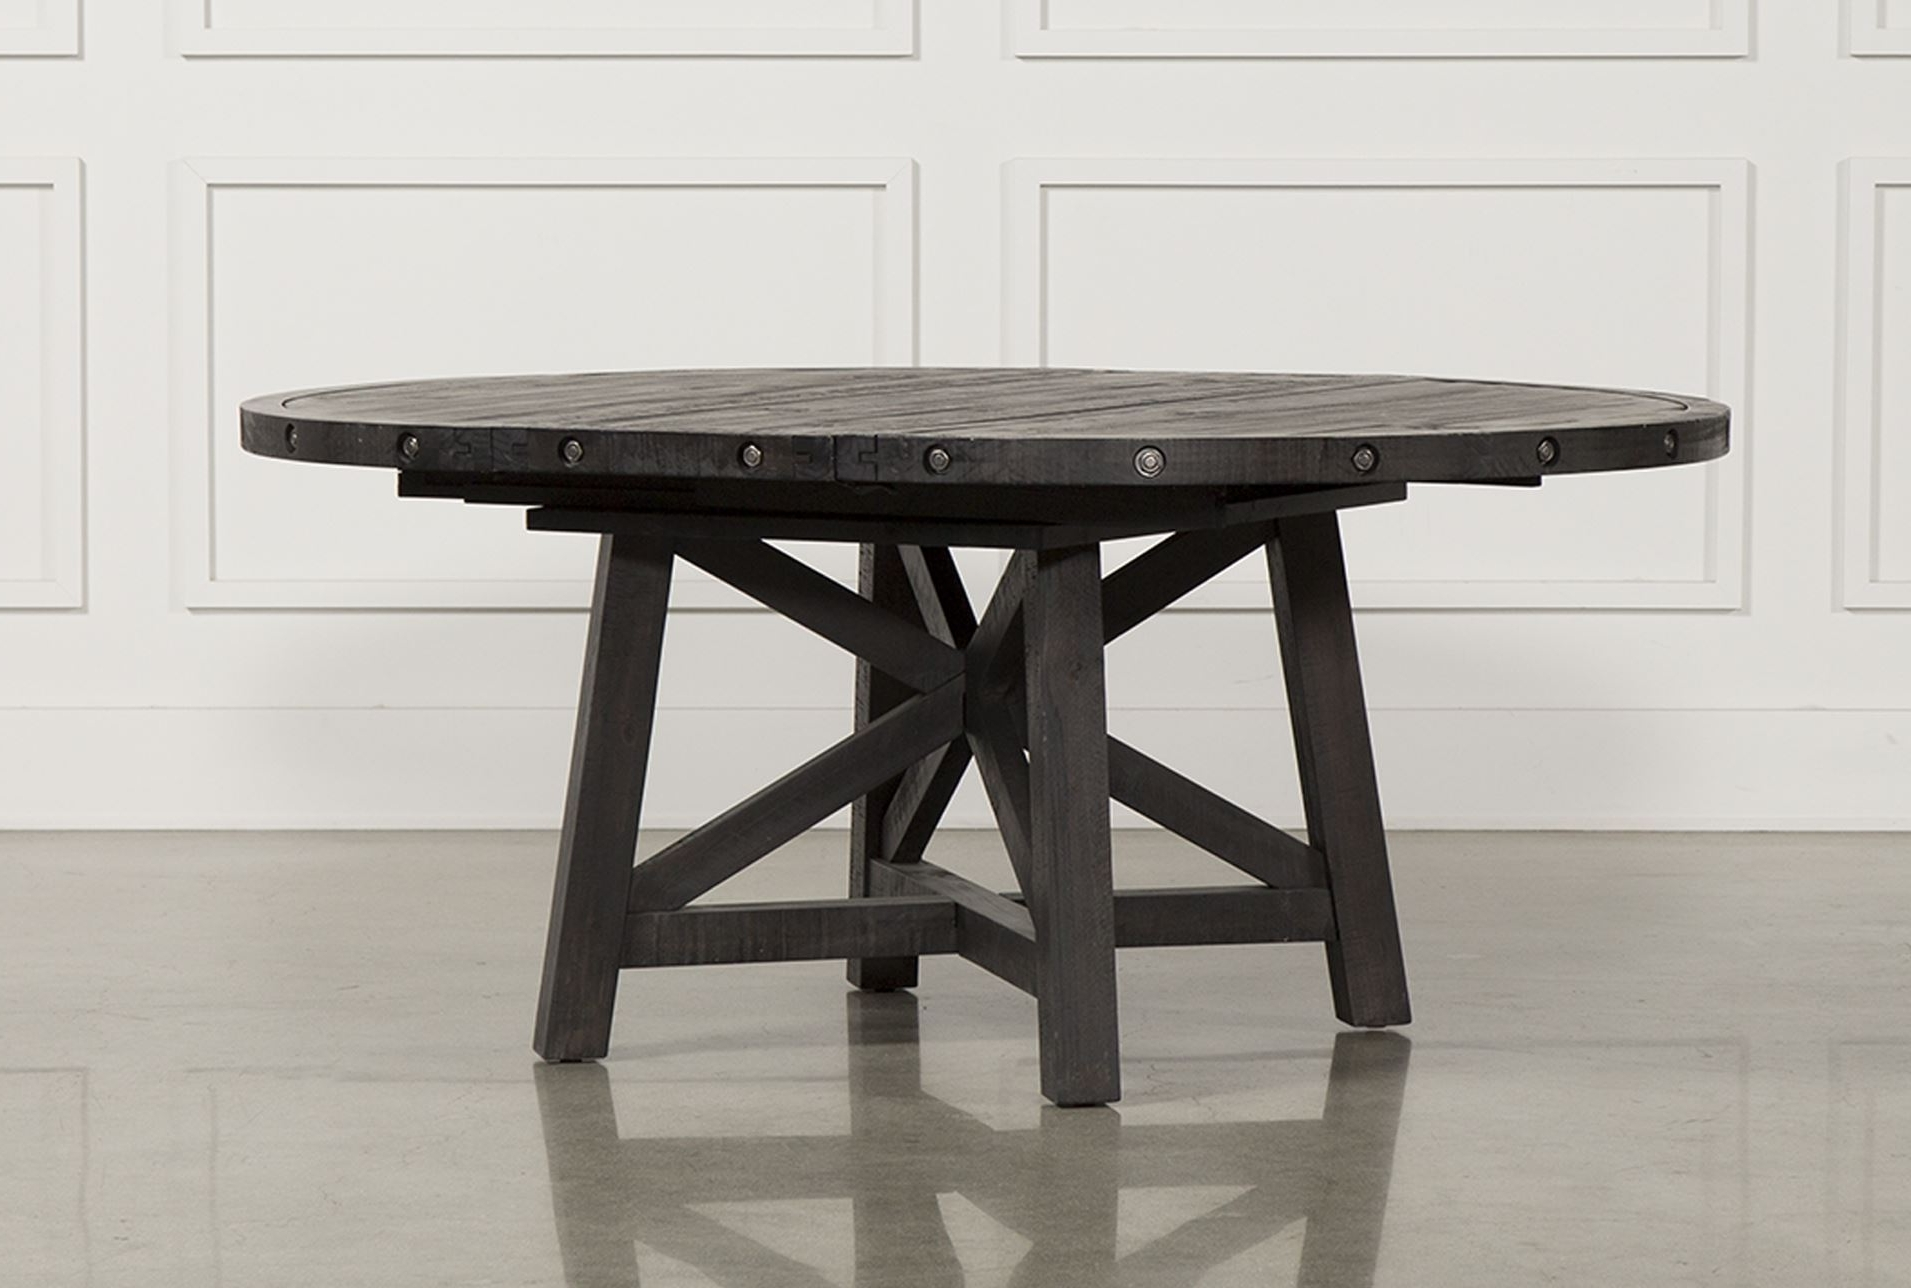 Entertain Them With Your Country Dining Table! – Home Decor Ideas Pertaining To Most Recently Released Round Extendable Dining Tables (View 7 of 25)